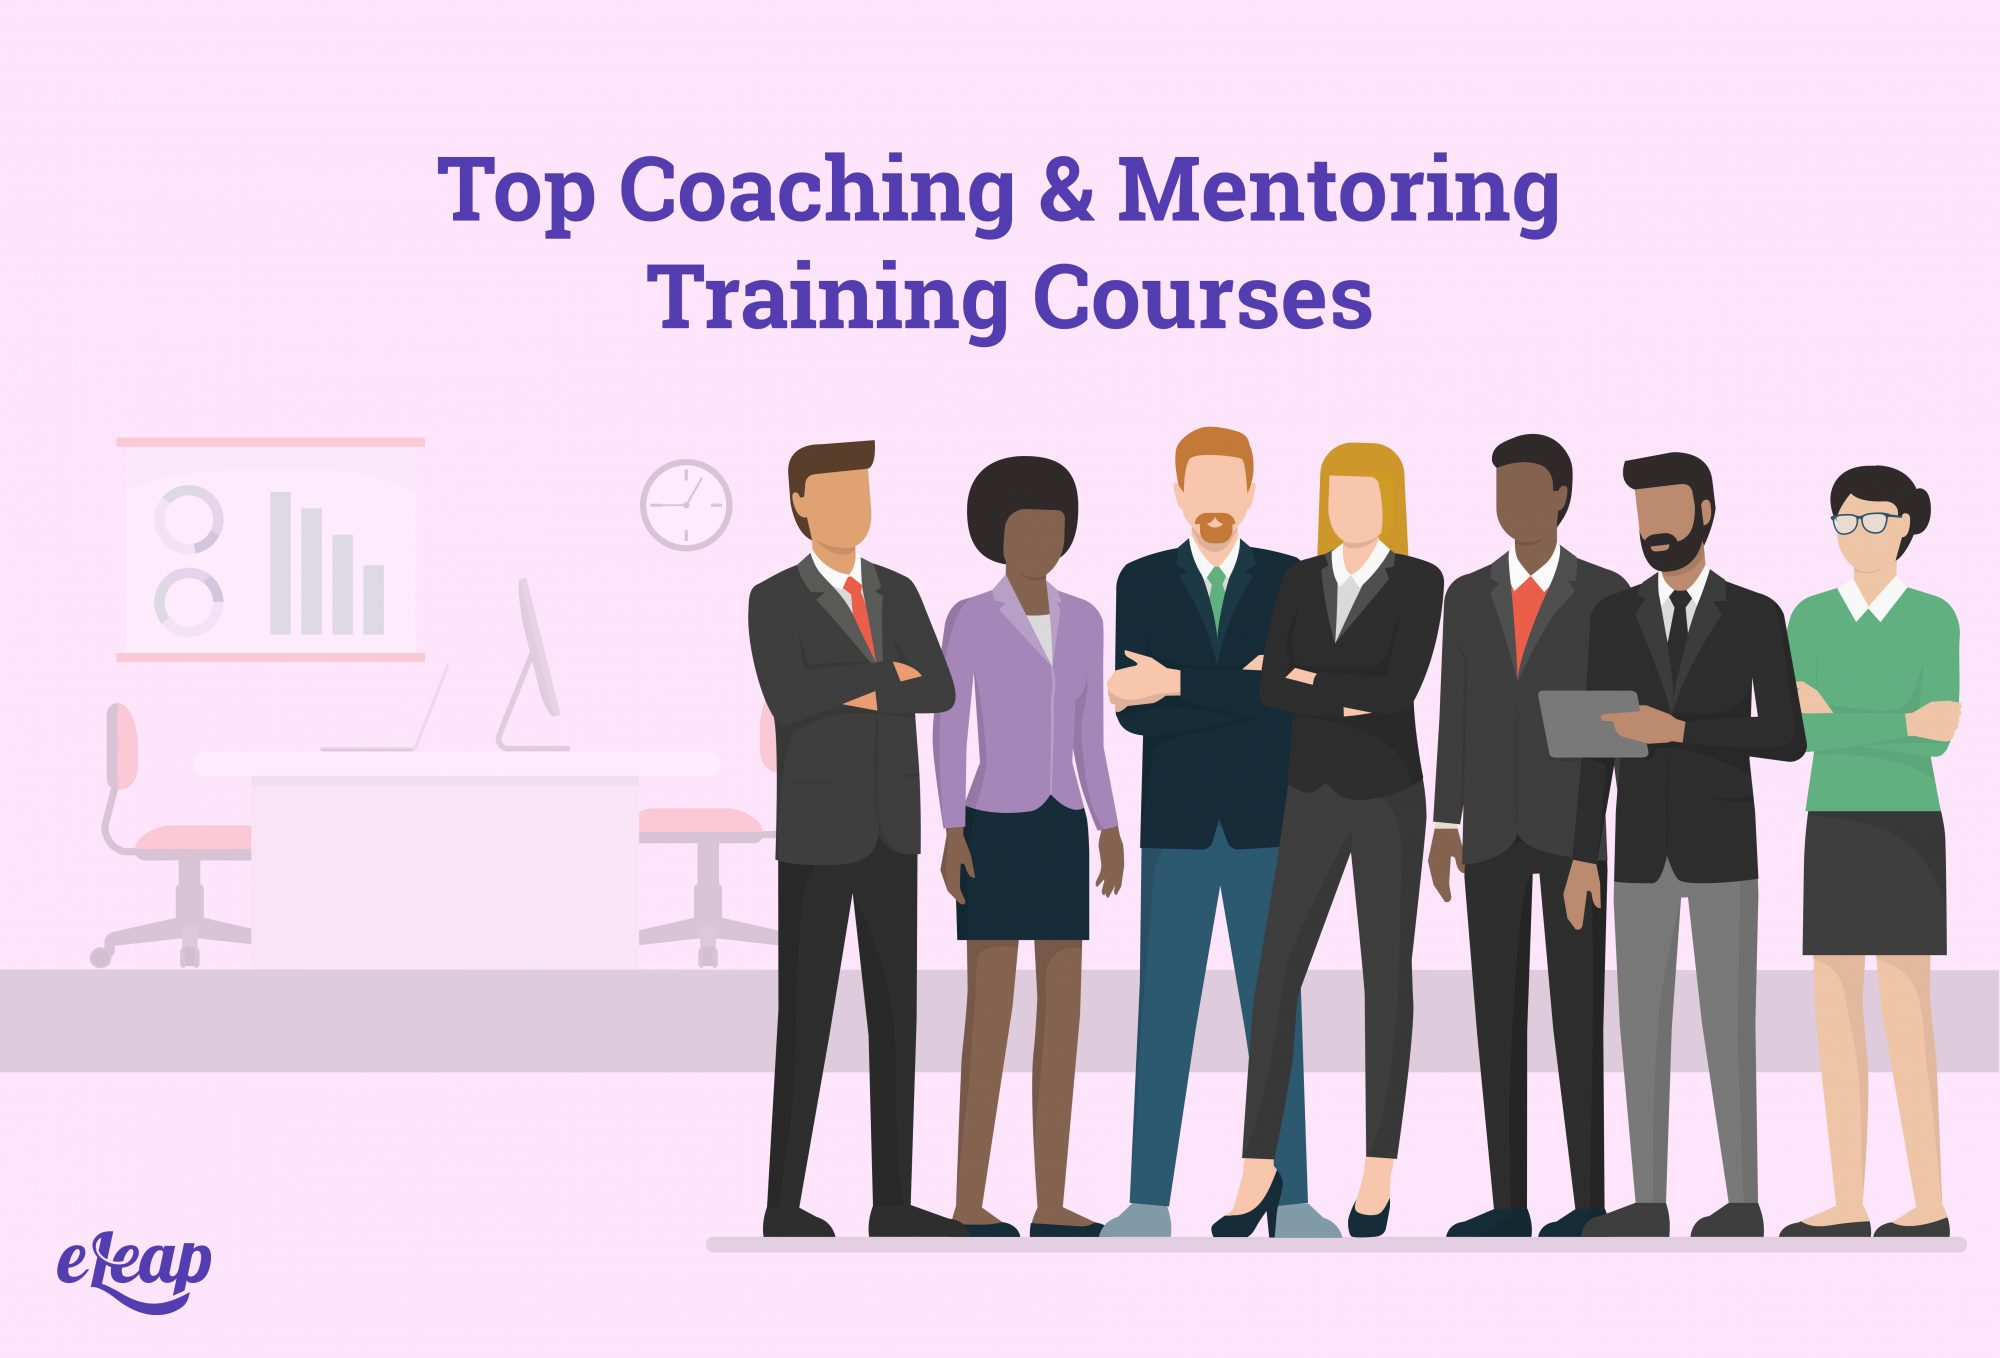 Top-Coaching and Mentoring Training Courses